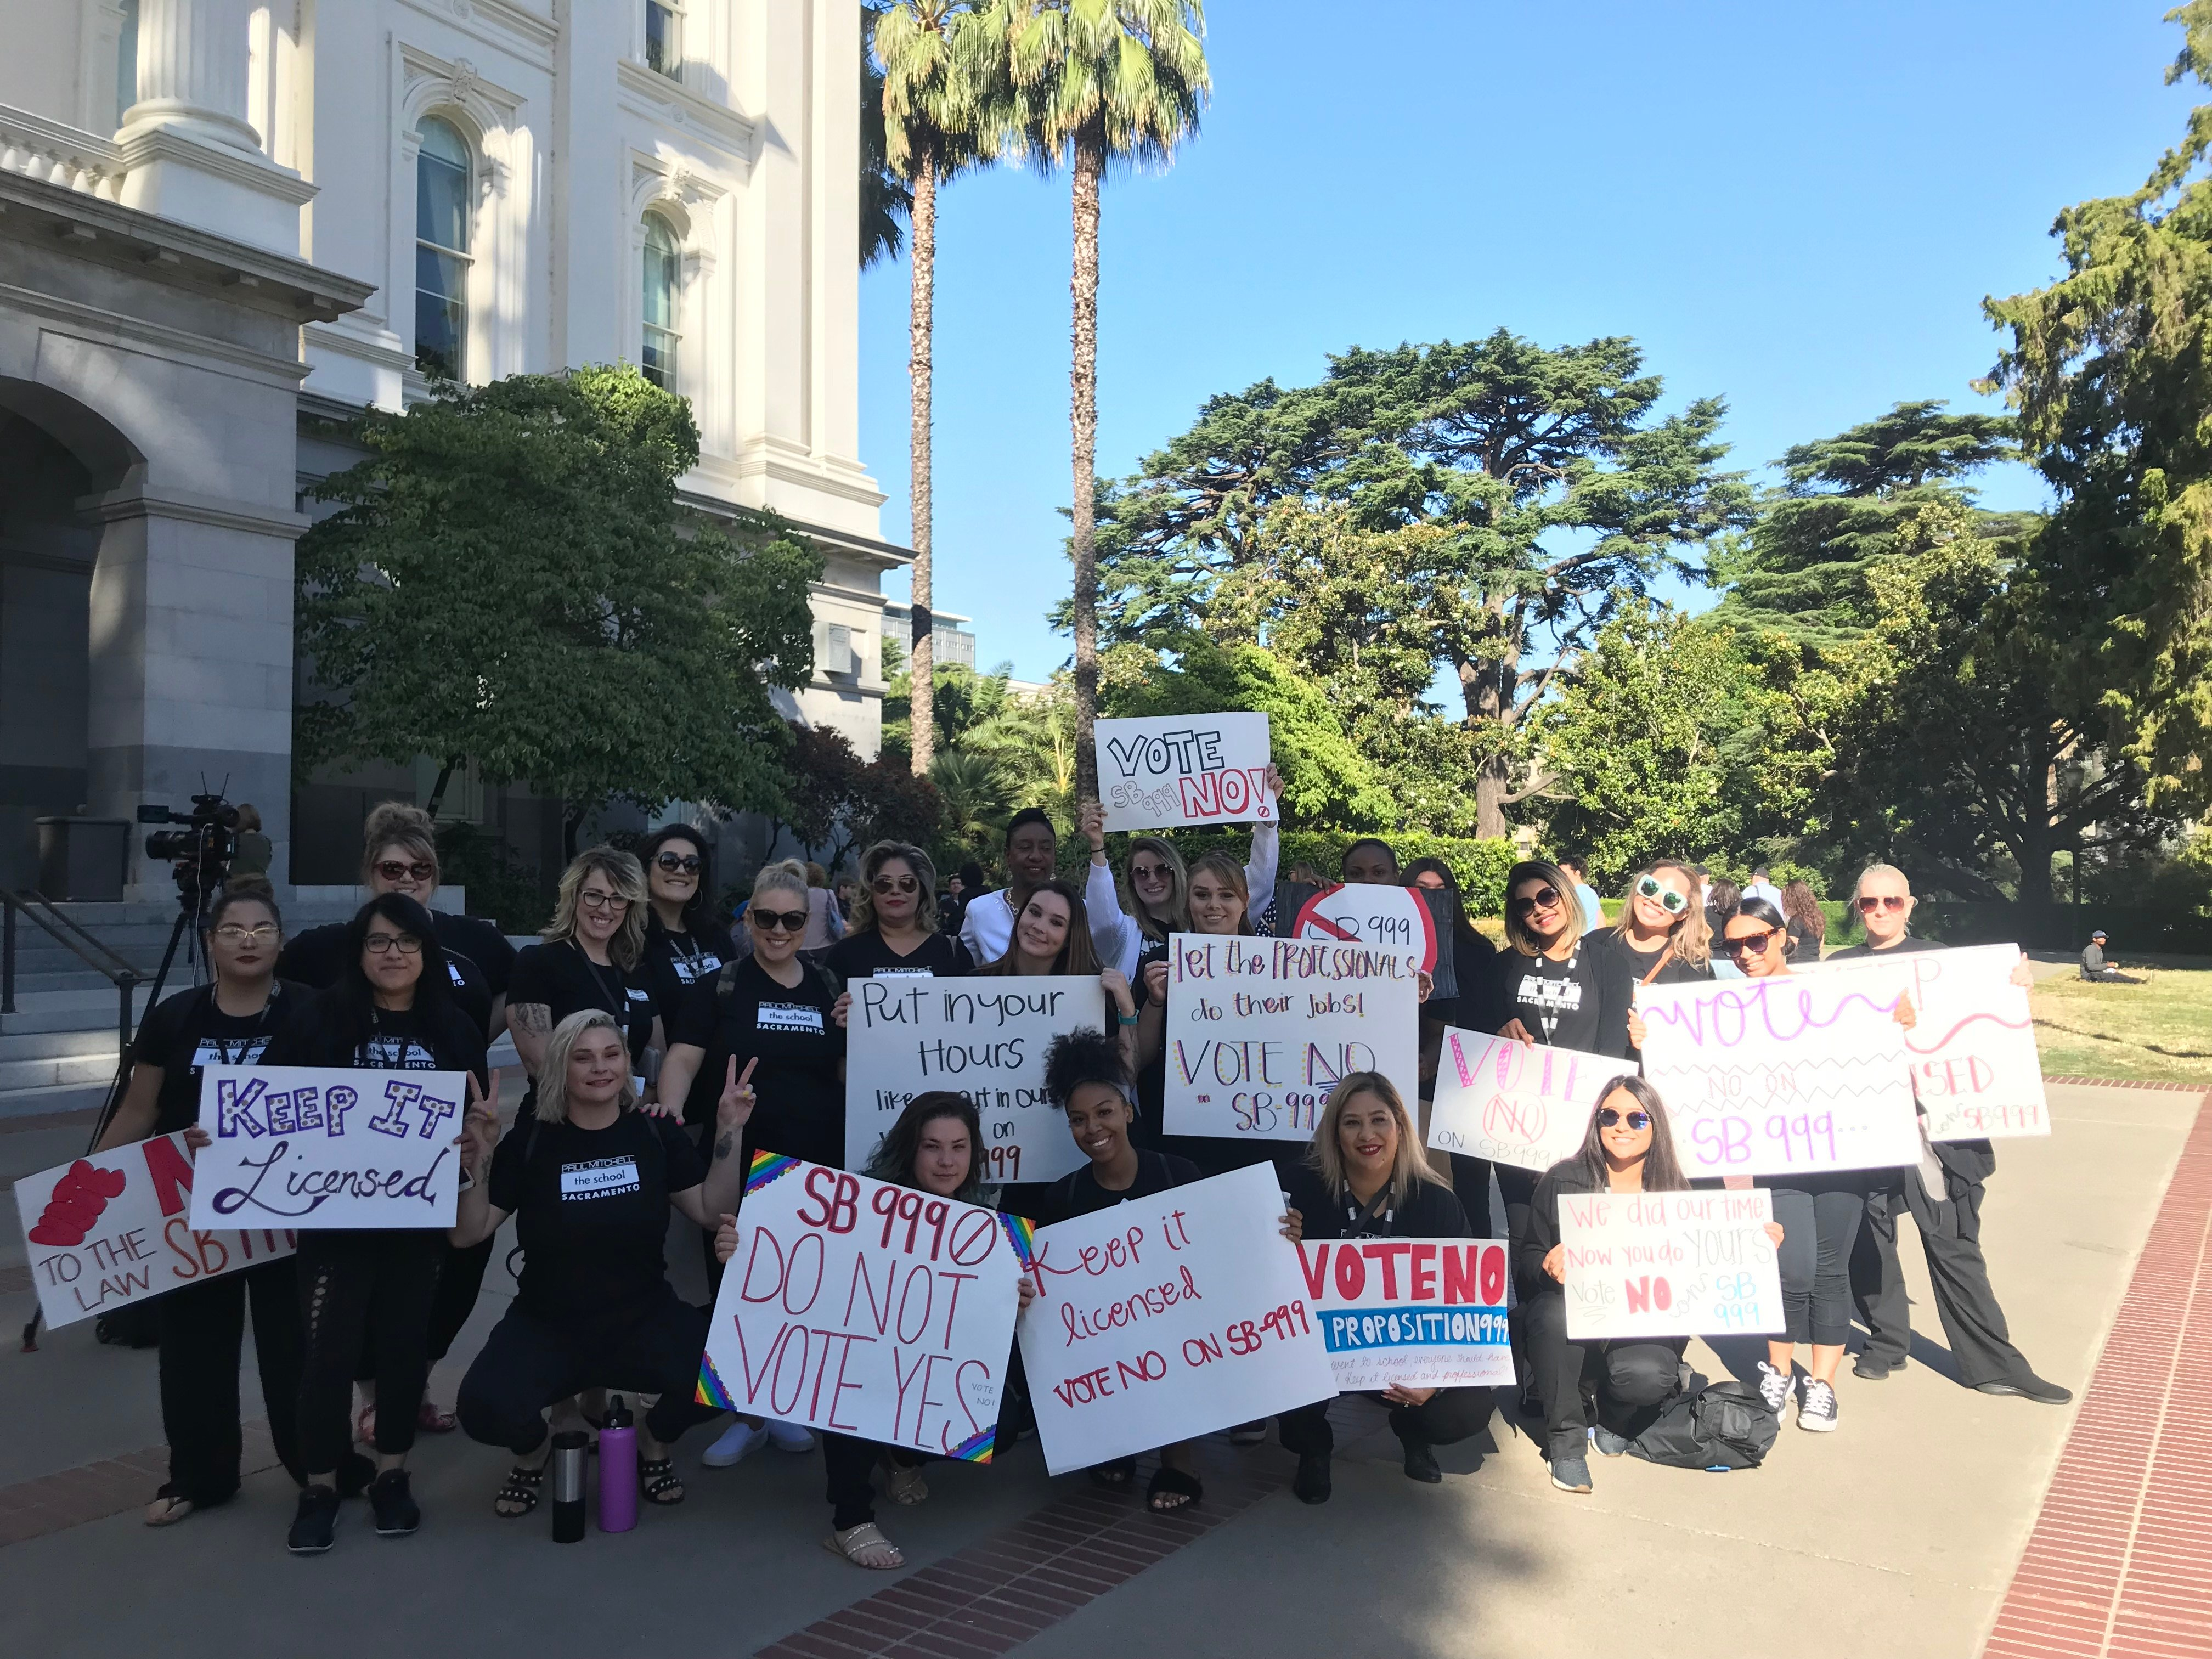 Protesting against the bill today, stylists and salon owners led the charge in Sacramento at a hearing opposing Senate Bill 999.